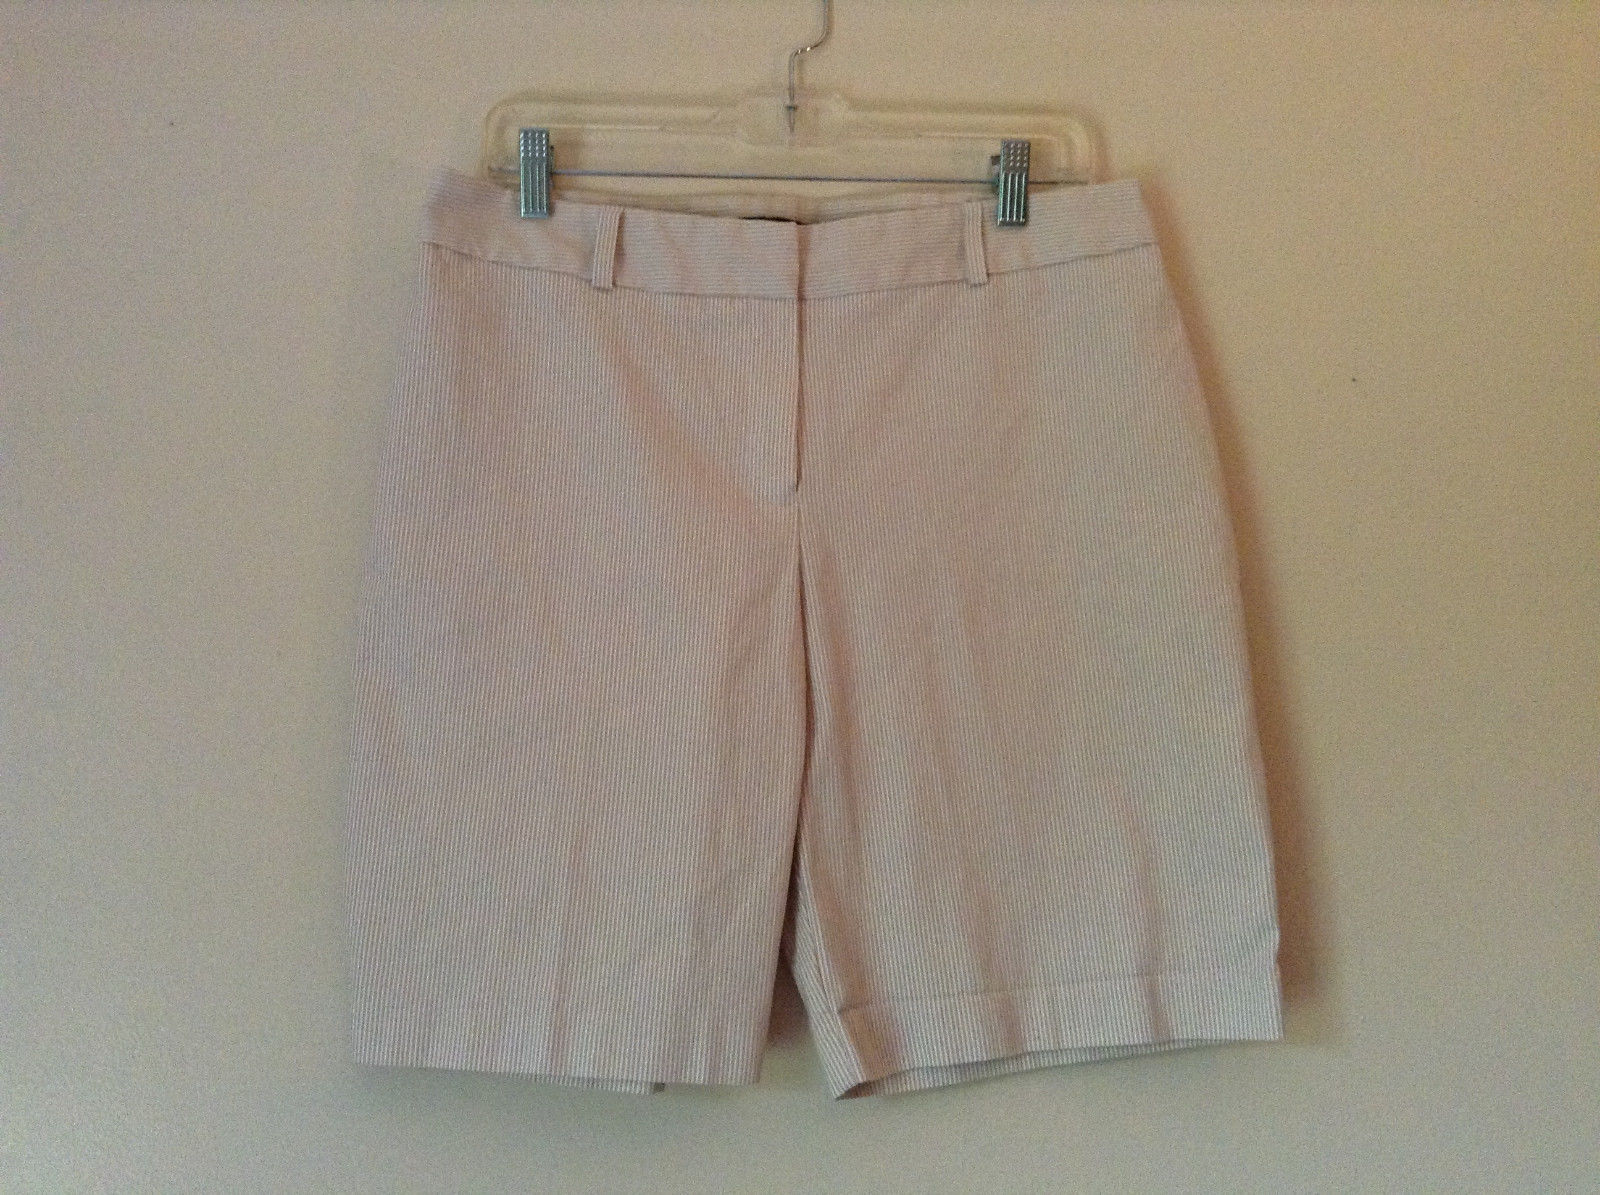 White and Light Brown Striped Shorts by Briggs New York Petite Size 12P